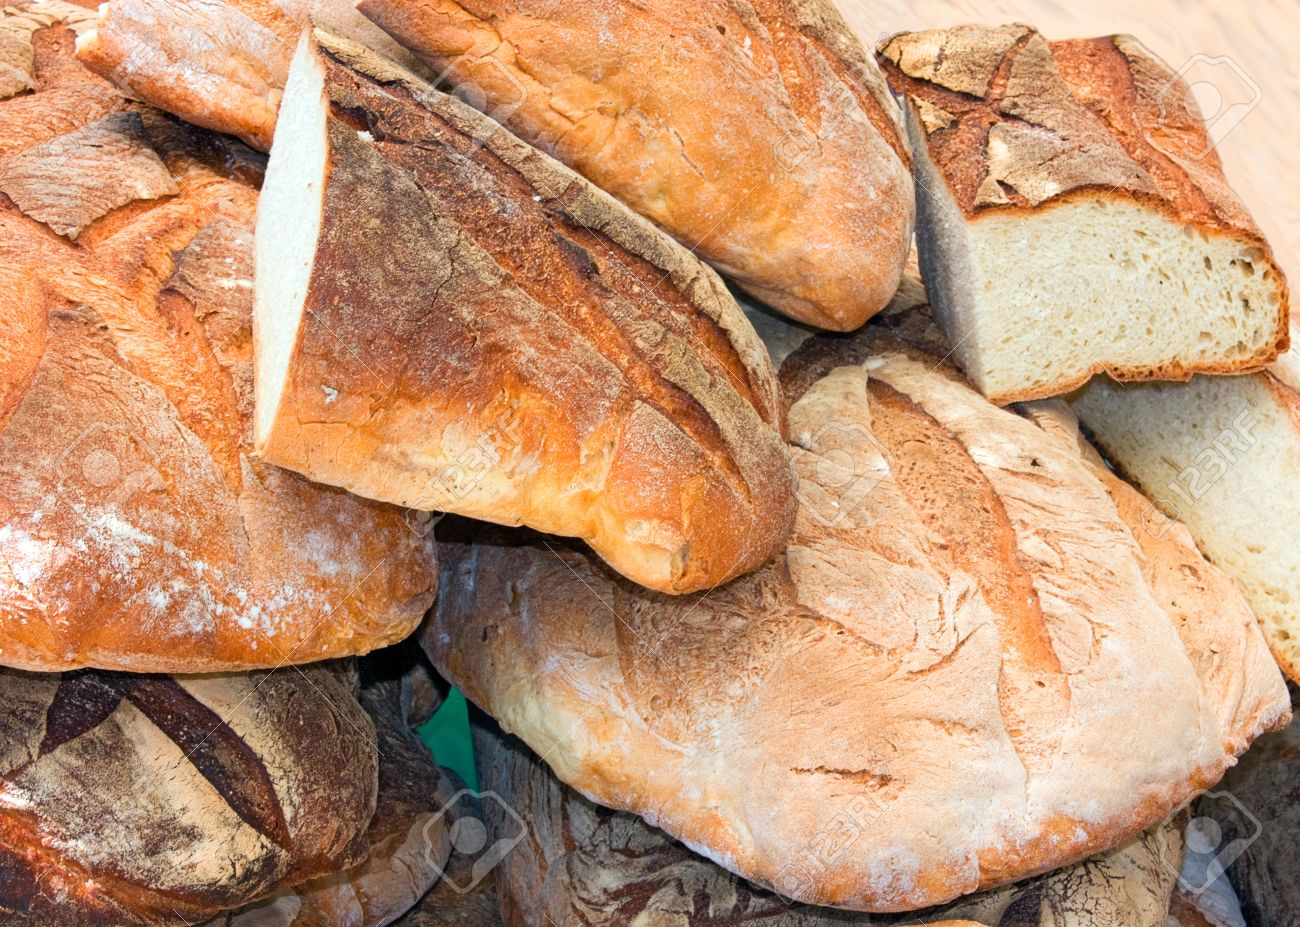 Large Pieces Of Italian Bread At Natural Leavening Exposure Bakery Market Traditional